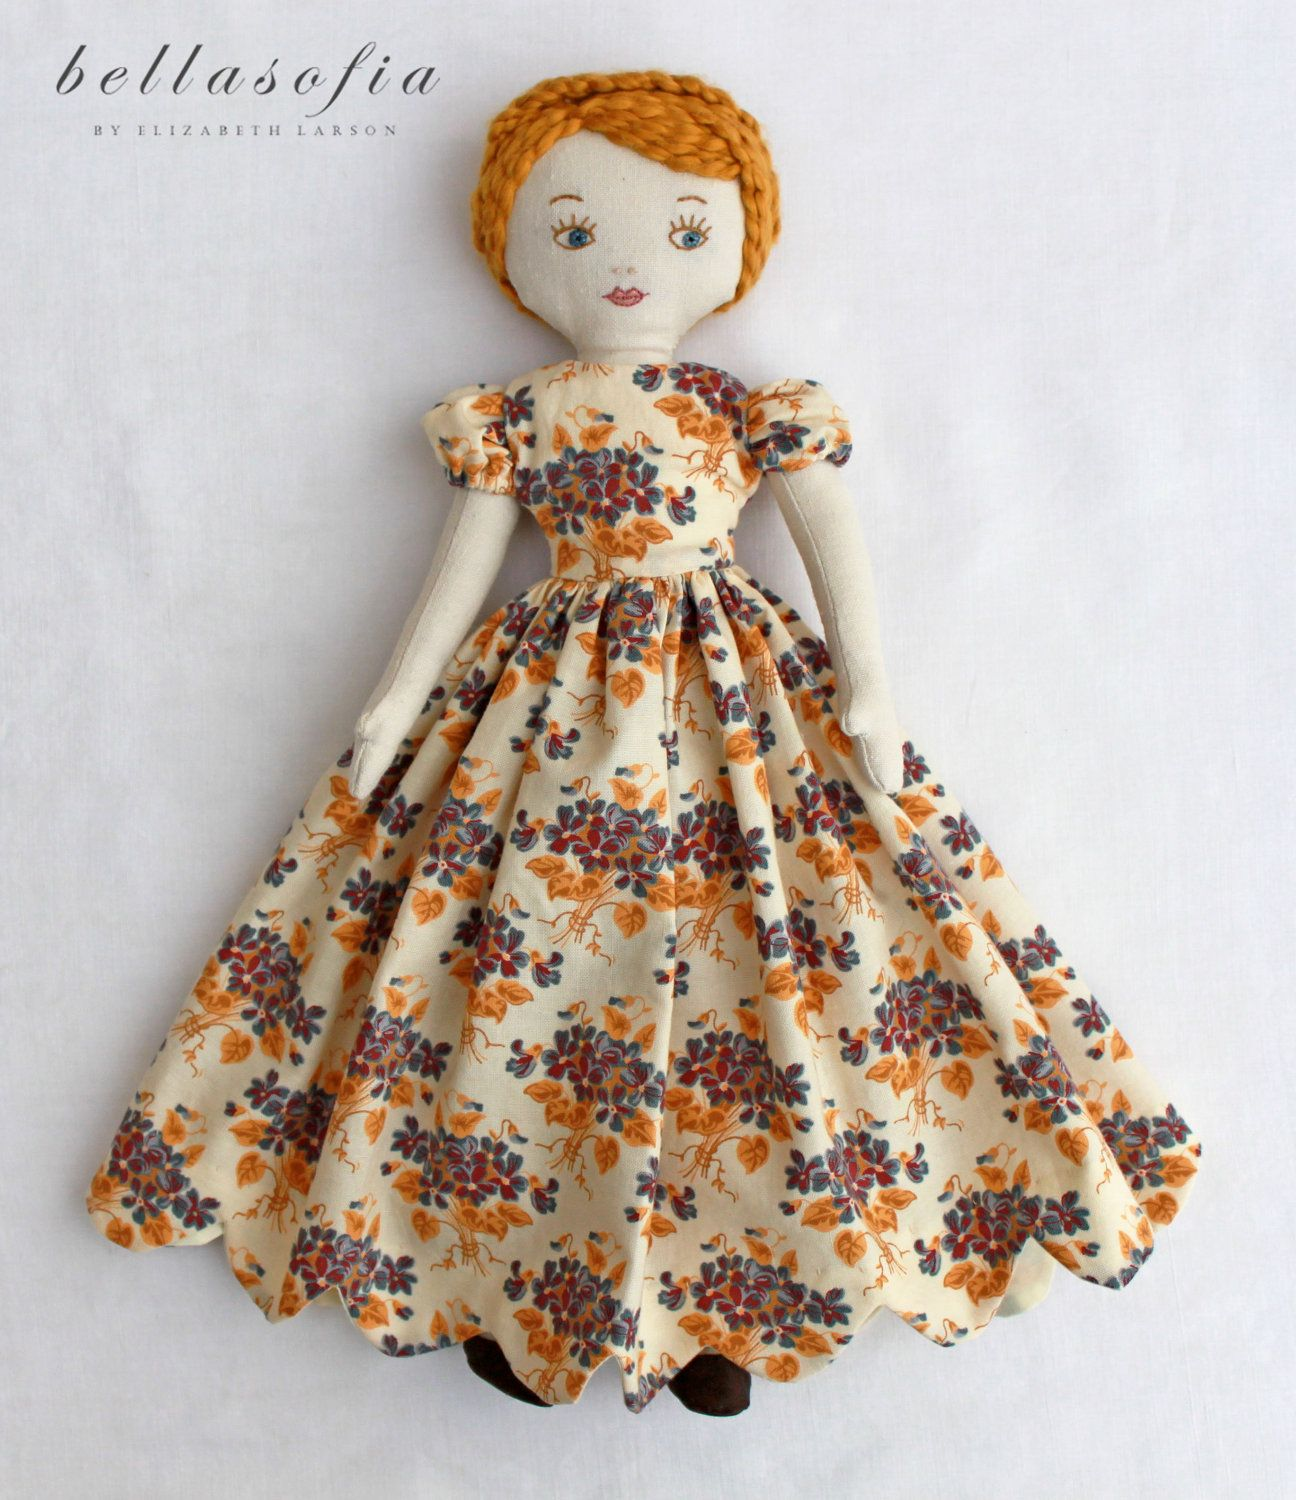 """a bellasofia beauty """"Violet"""" heirloom quality vintage inspired rag doll - Absolutely stunning!"""